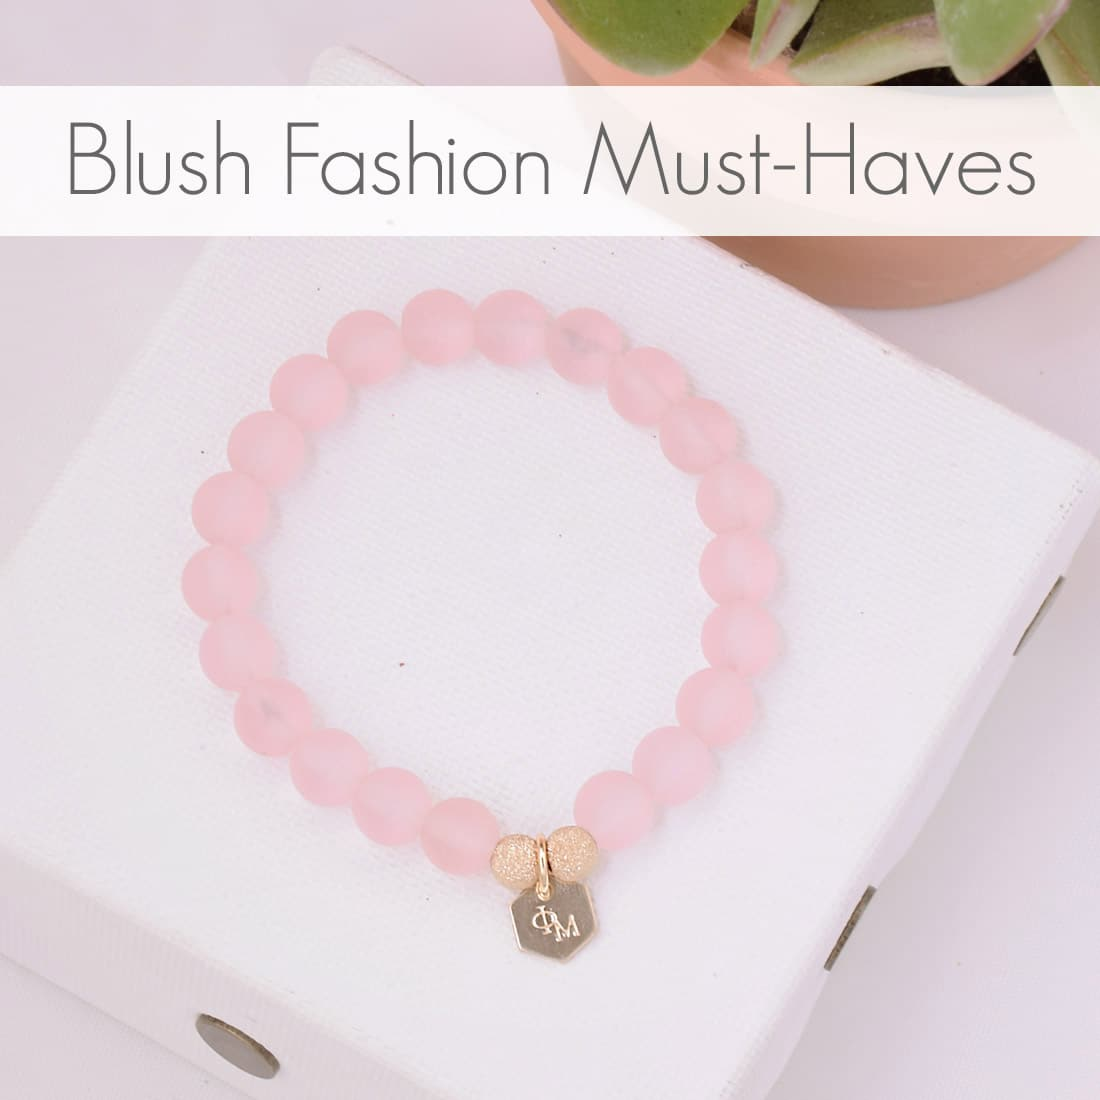 Blush Fashion Must Haves